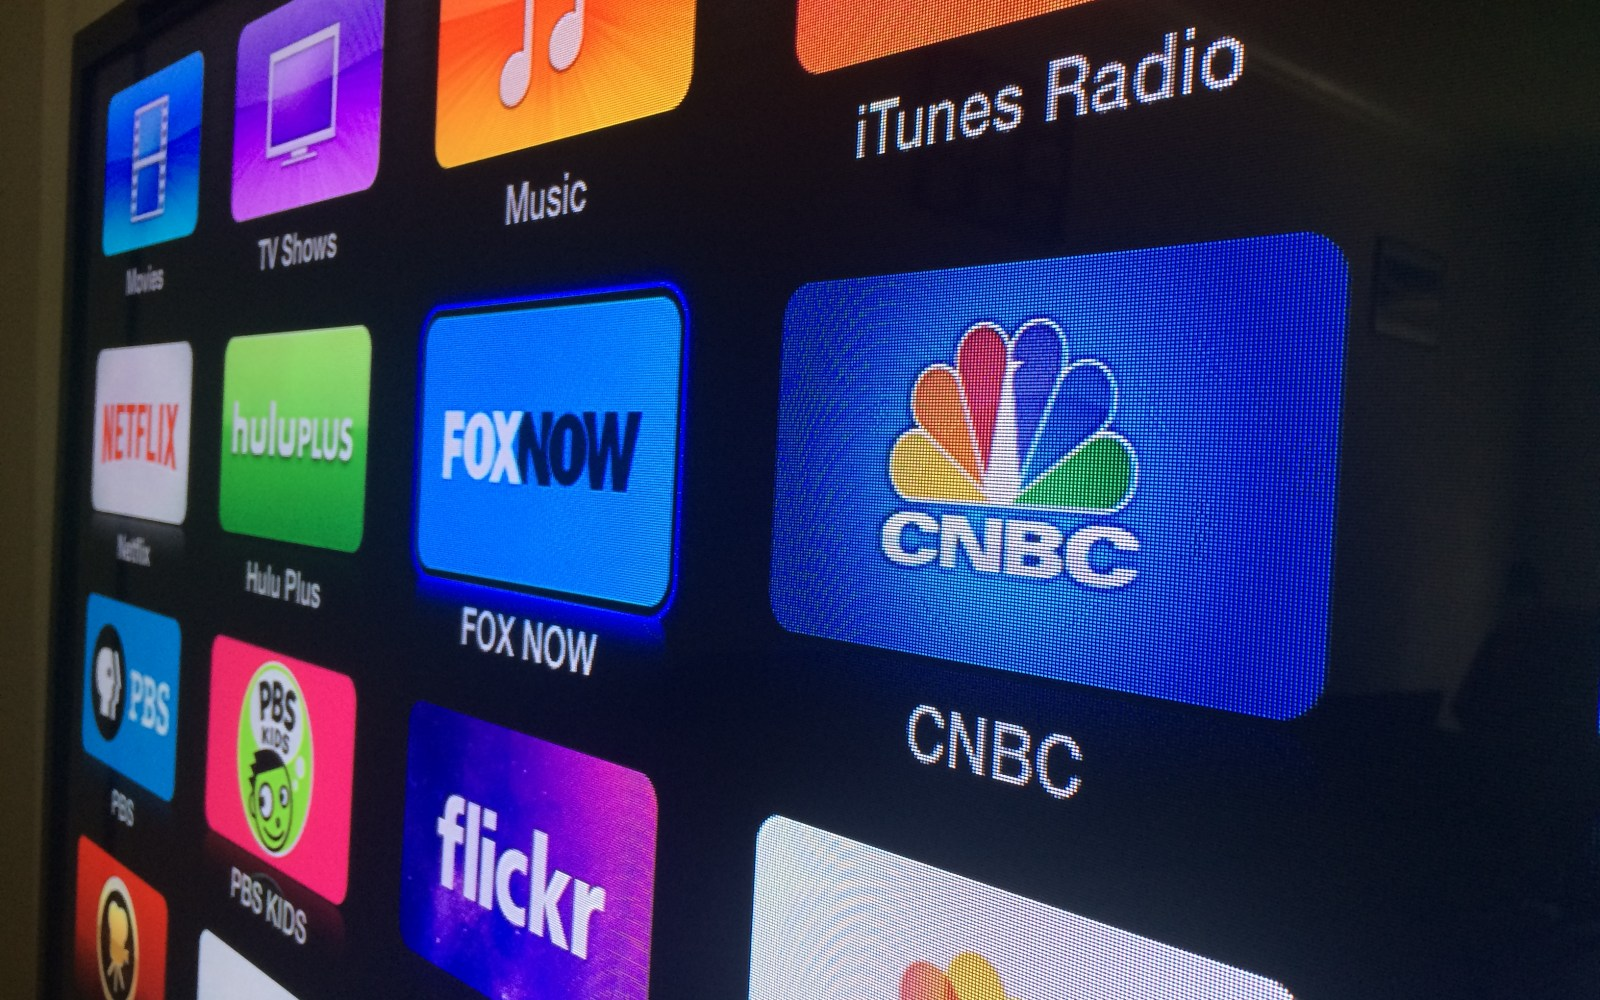 Apple TV updated with FOX NOW, CNBC channels